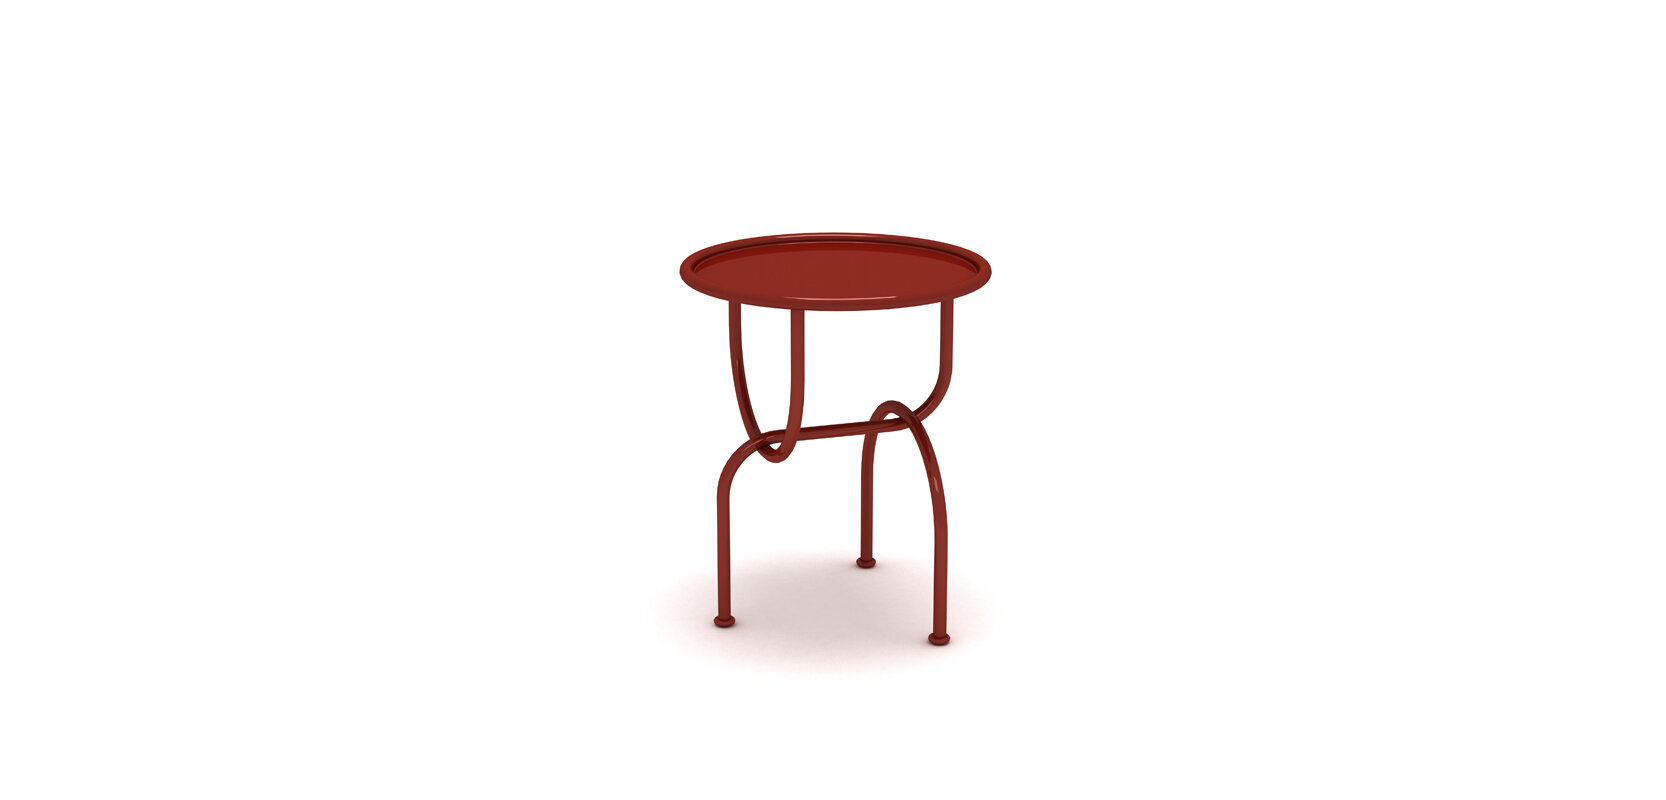 WIST SIDE TABLE BRAND:  HC28 COSMOPOLITAN  WEB:   www.hc28.com.cn/cosmo/  Wist Side Table posts a deep thought in points, lines and planes with its artistic and functional design, expresses a strong sense of random.